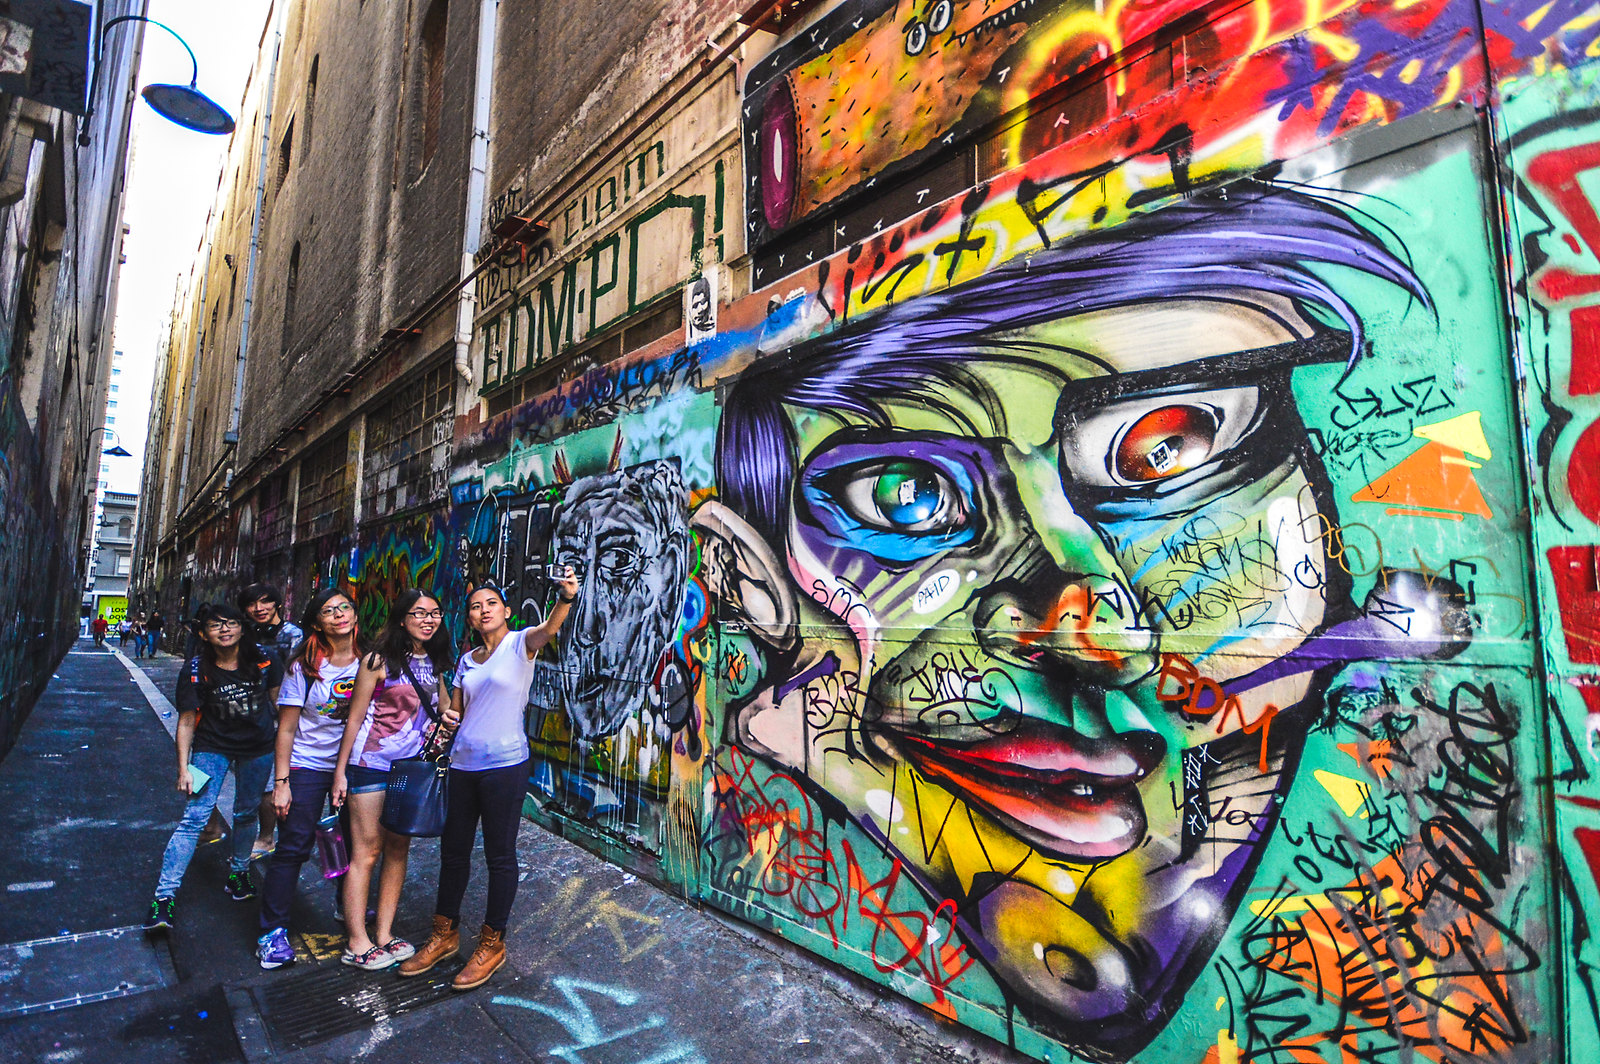 Melbourne Union Lane Street Art 2015